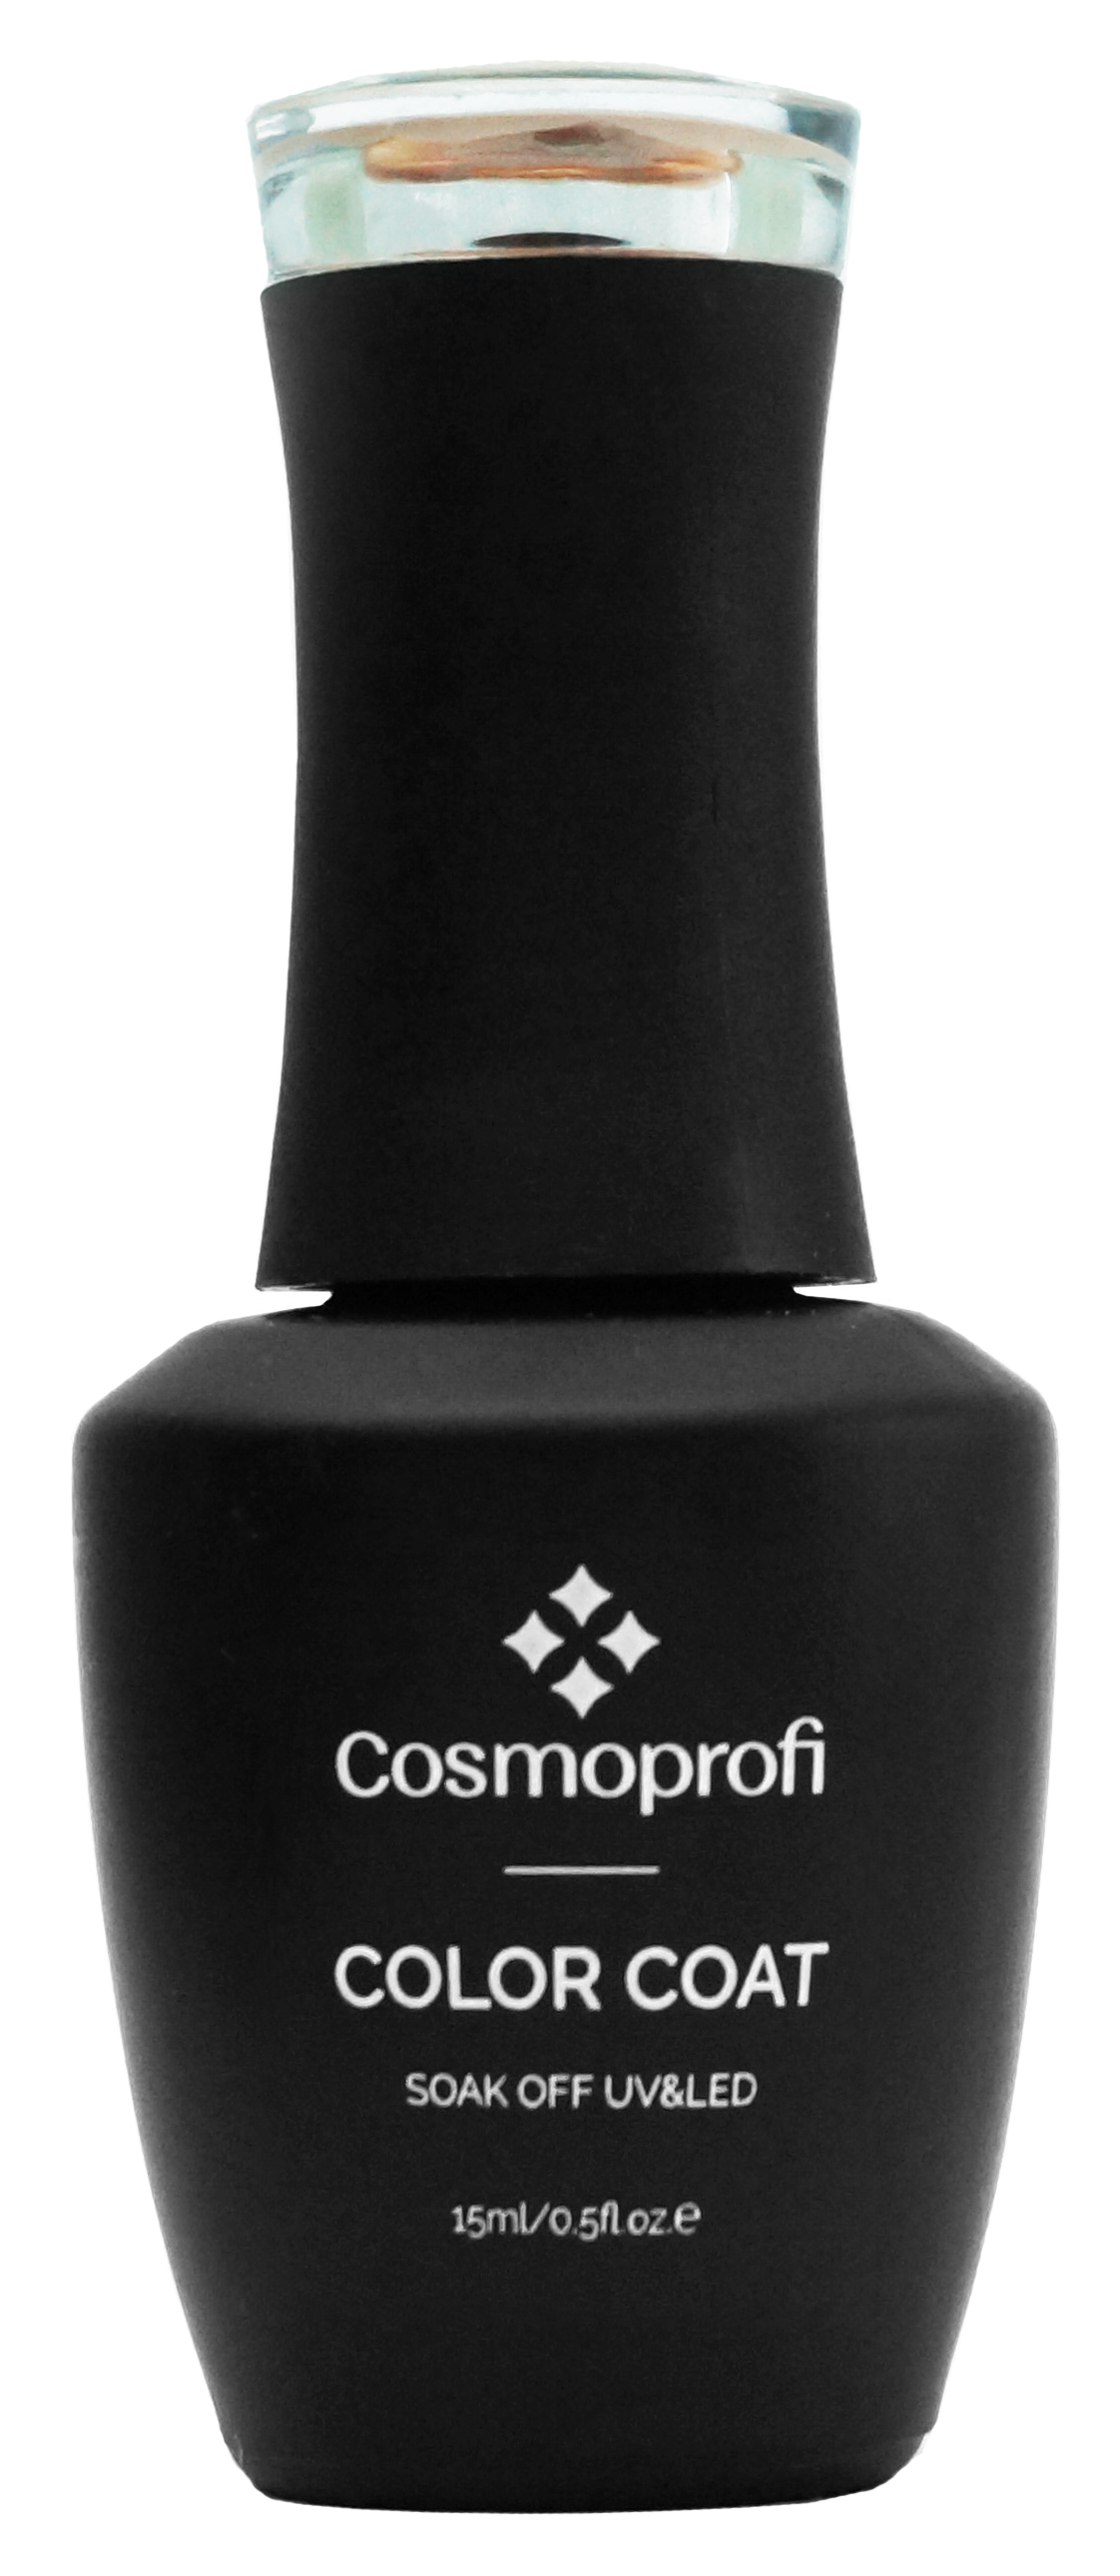 Гель-лак Cosmoprofi, Color coat № 65, 15 мл